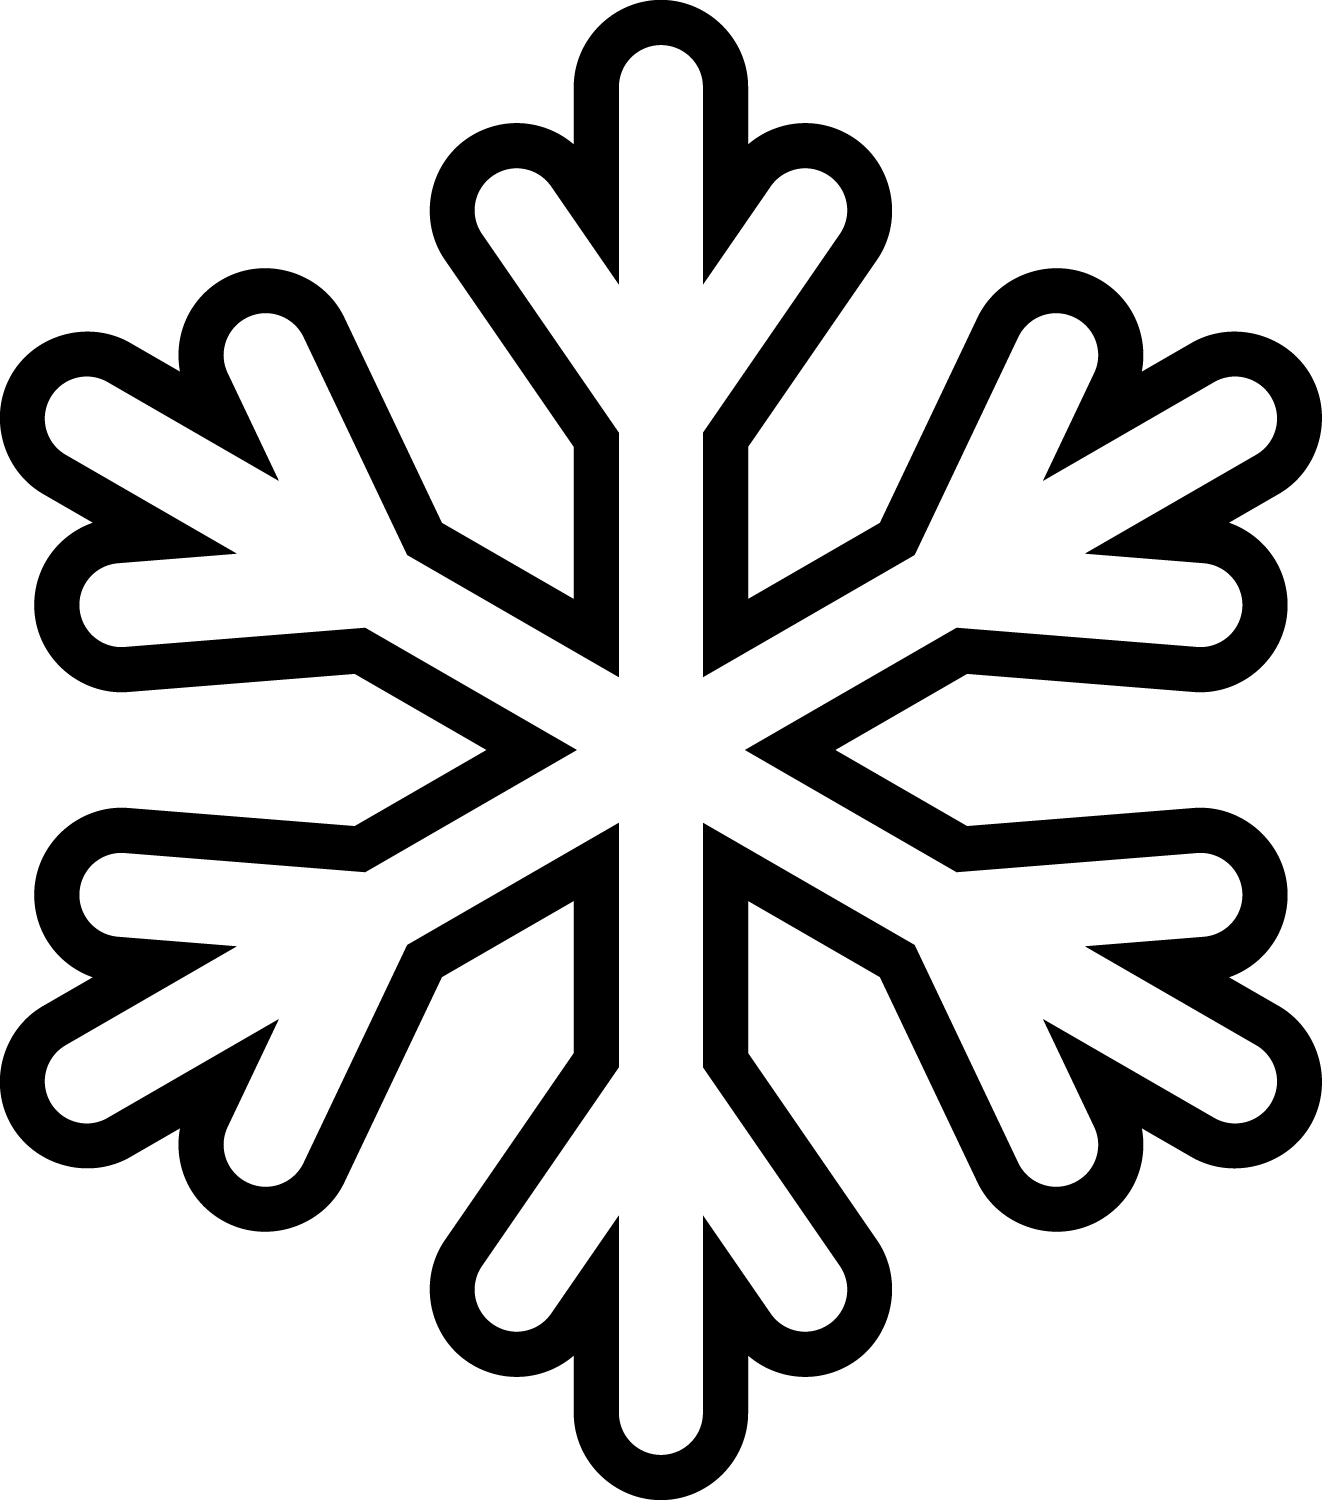 Snowflake clipart black and white png image black and white library snowflake-clipart-outline-xigKKLE5T.png.cf.png (1322×1500) | Diy ... image black and white library